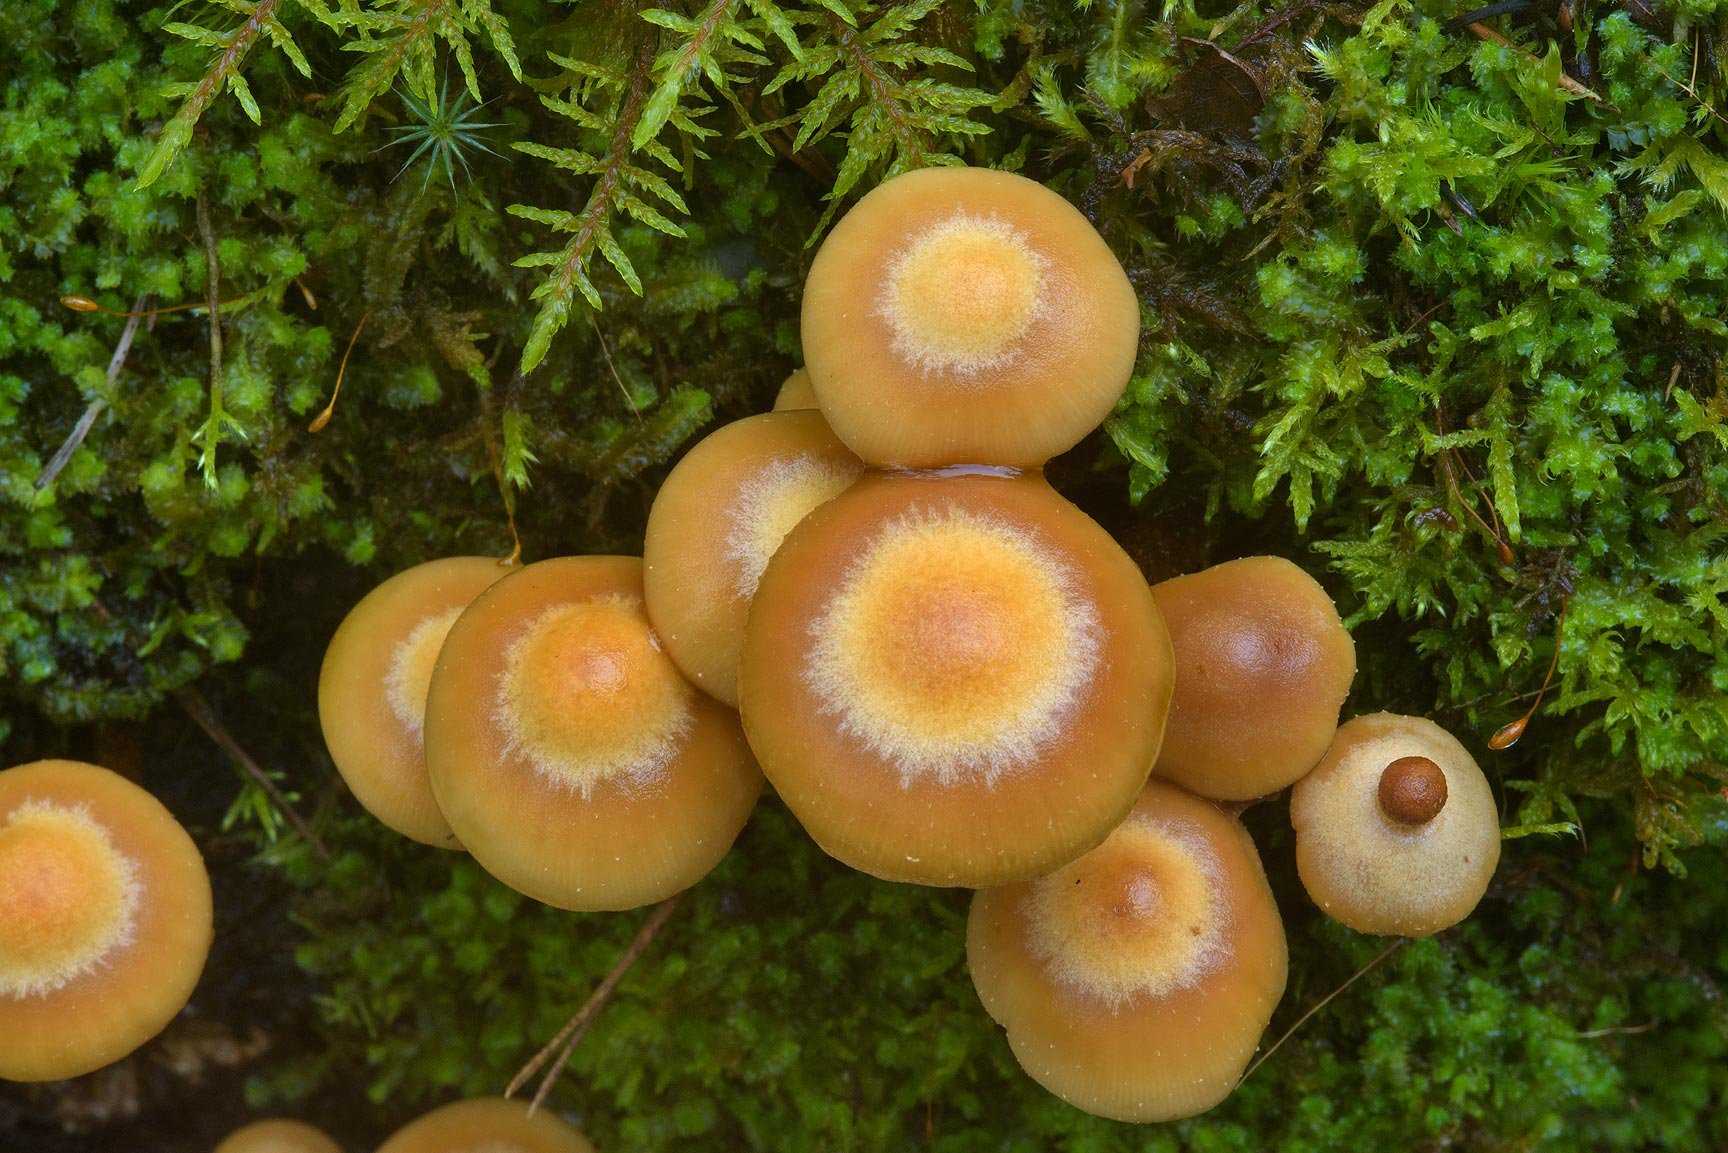 Sheathed woodtuft mushrooms (Kuehneromyces...Petersburg. Leningrad Region, Russia